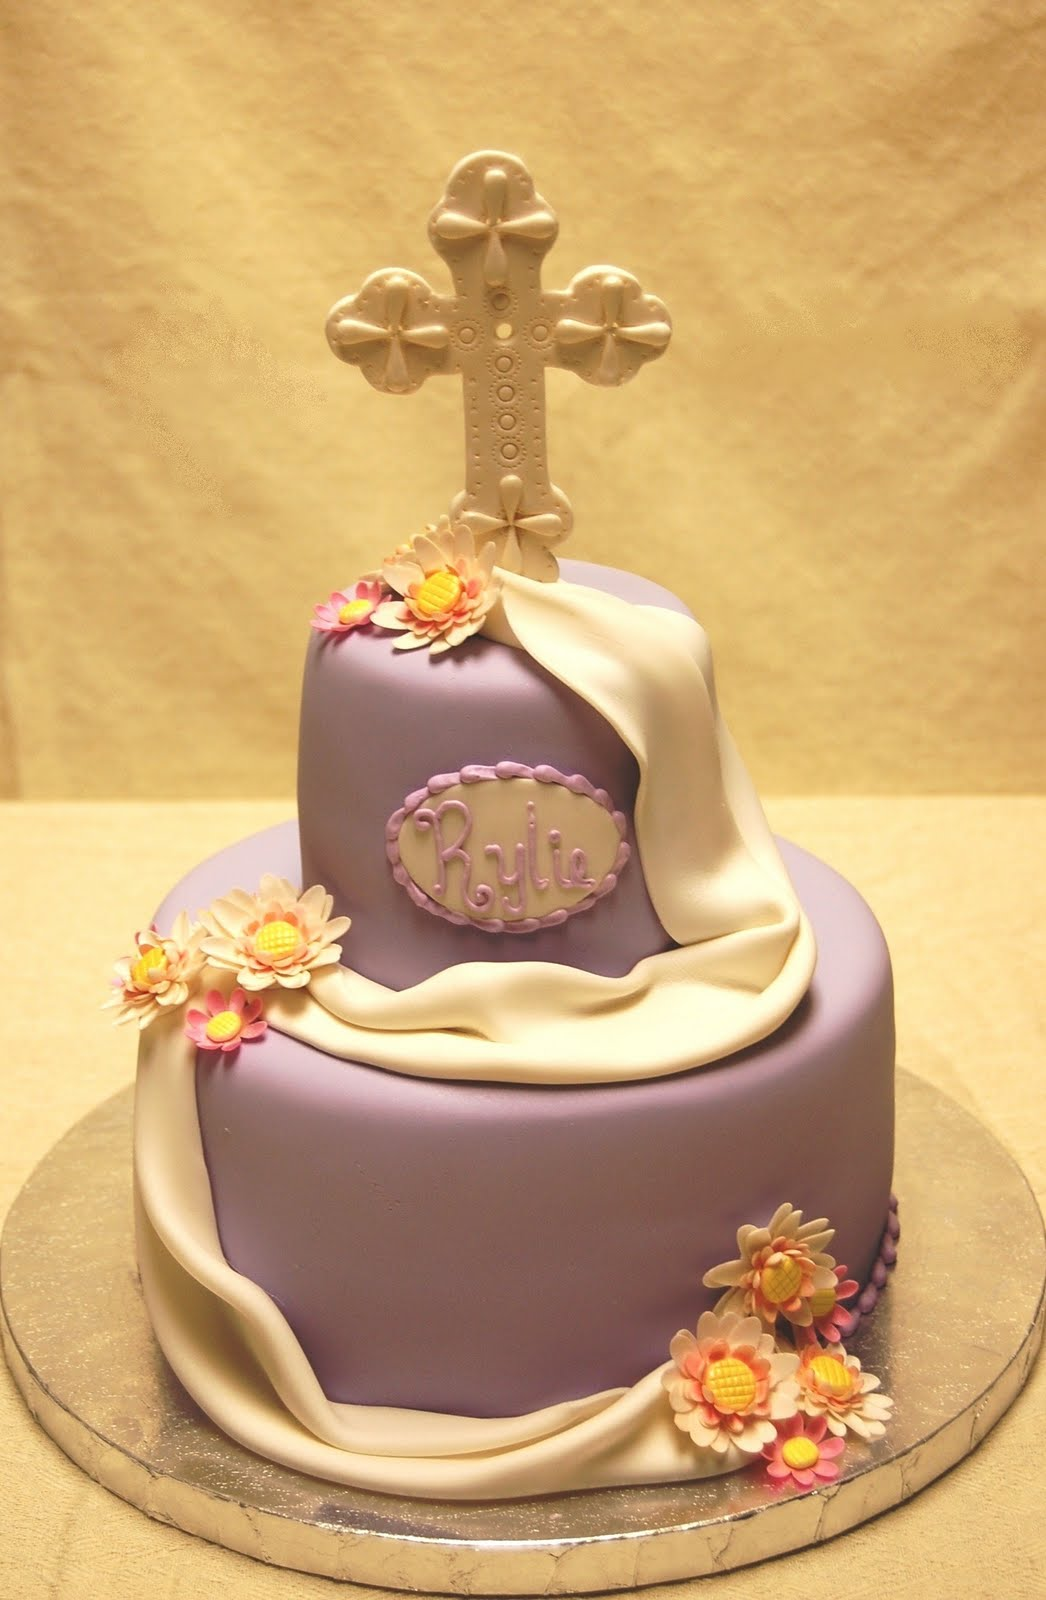 First Communion Cake Images : Drea s Dessert Factory: First Communion Cake